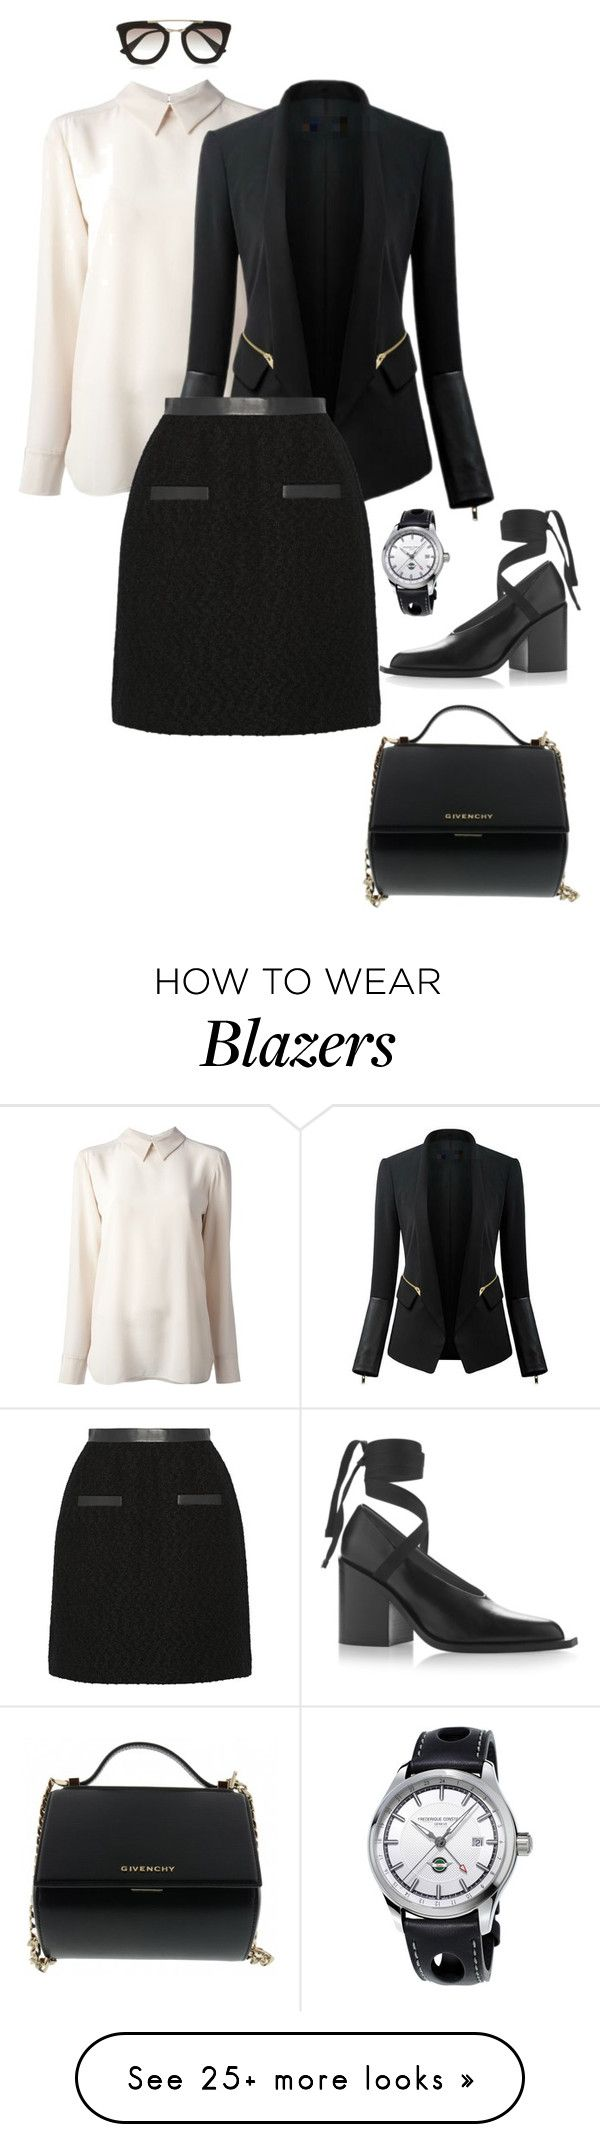 """""""Style#910"""" by mussedechocolate on Polyvore featuring STELLA McCARTNEY, Chicsense, Jason Wu, Givenchy, Marni, Frédérique Constant, Prada, women's clothing, women and female"""